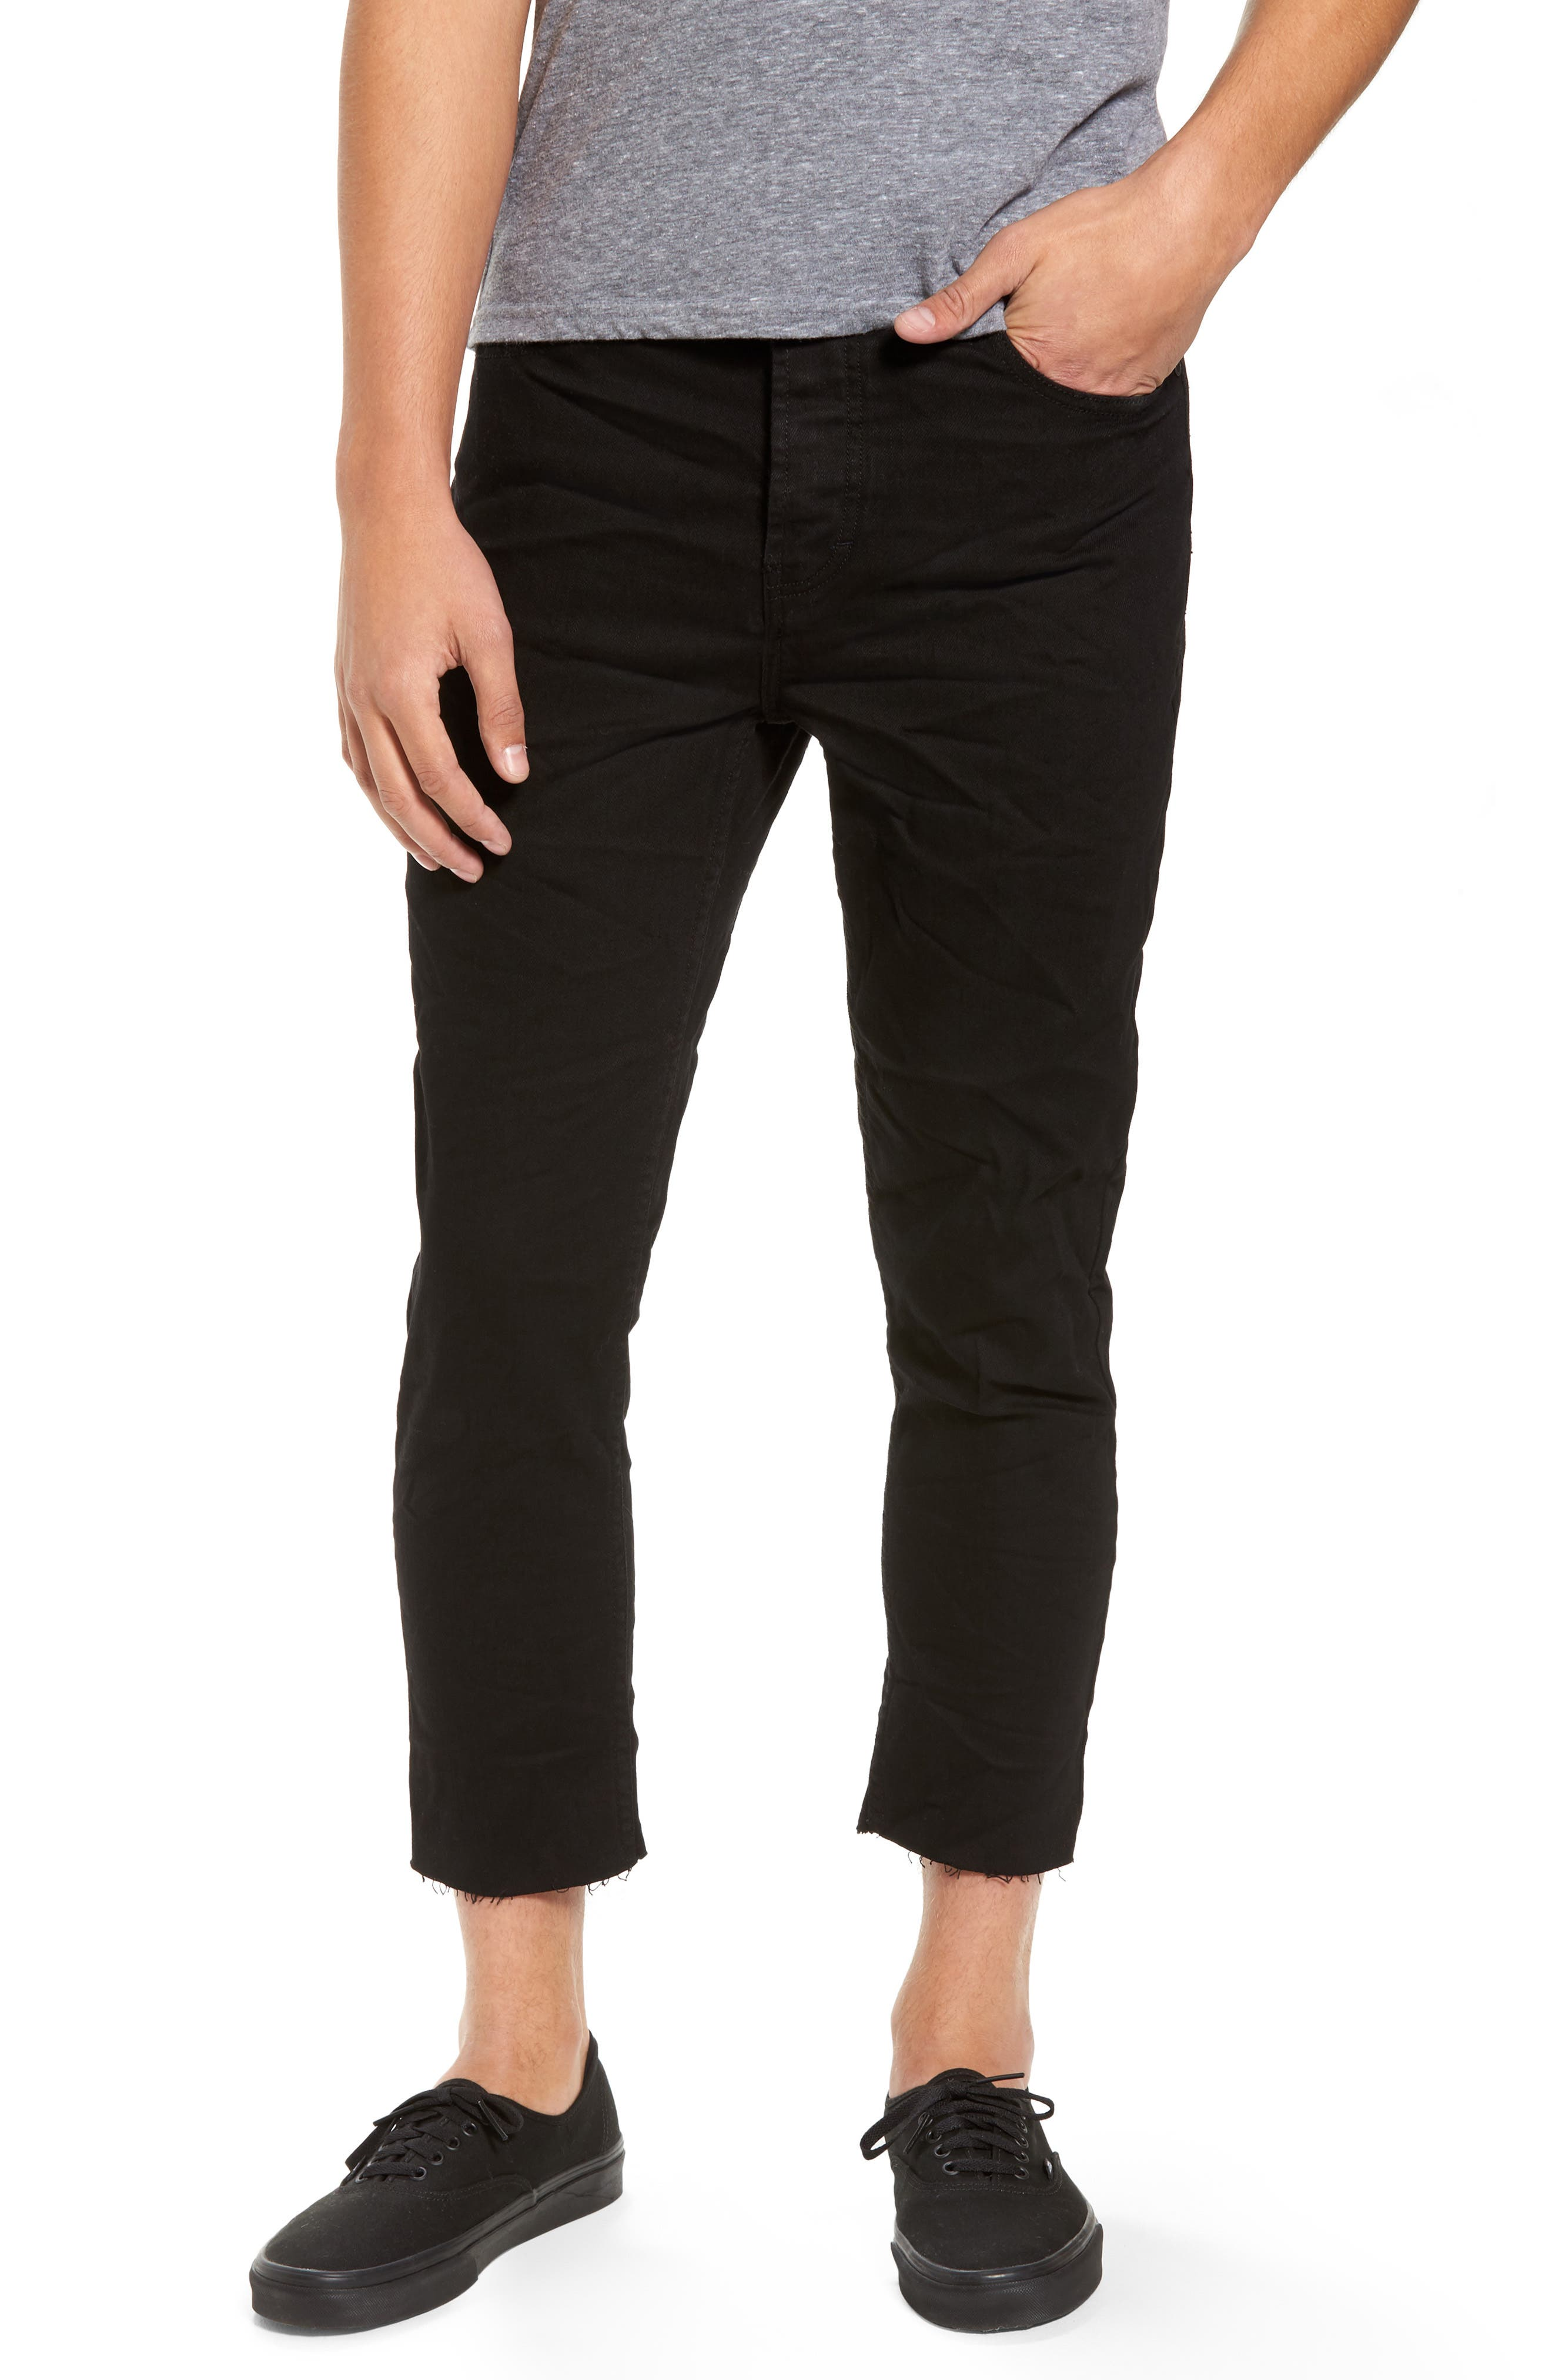 B.Line Crop Slim Fit Jeans,                             Main thumbnail 1, color,                             001